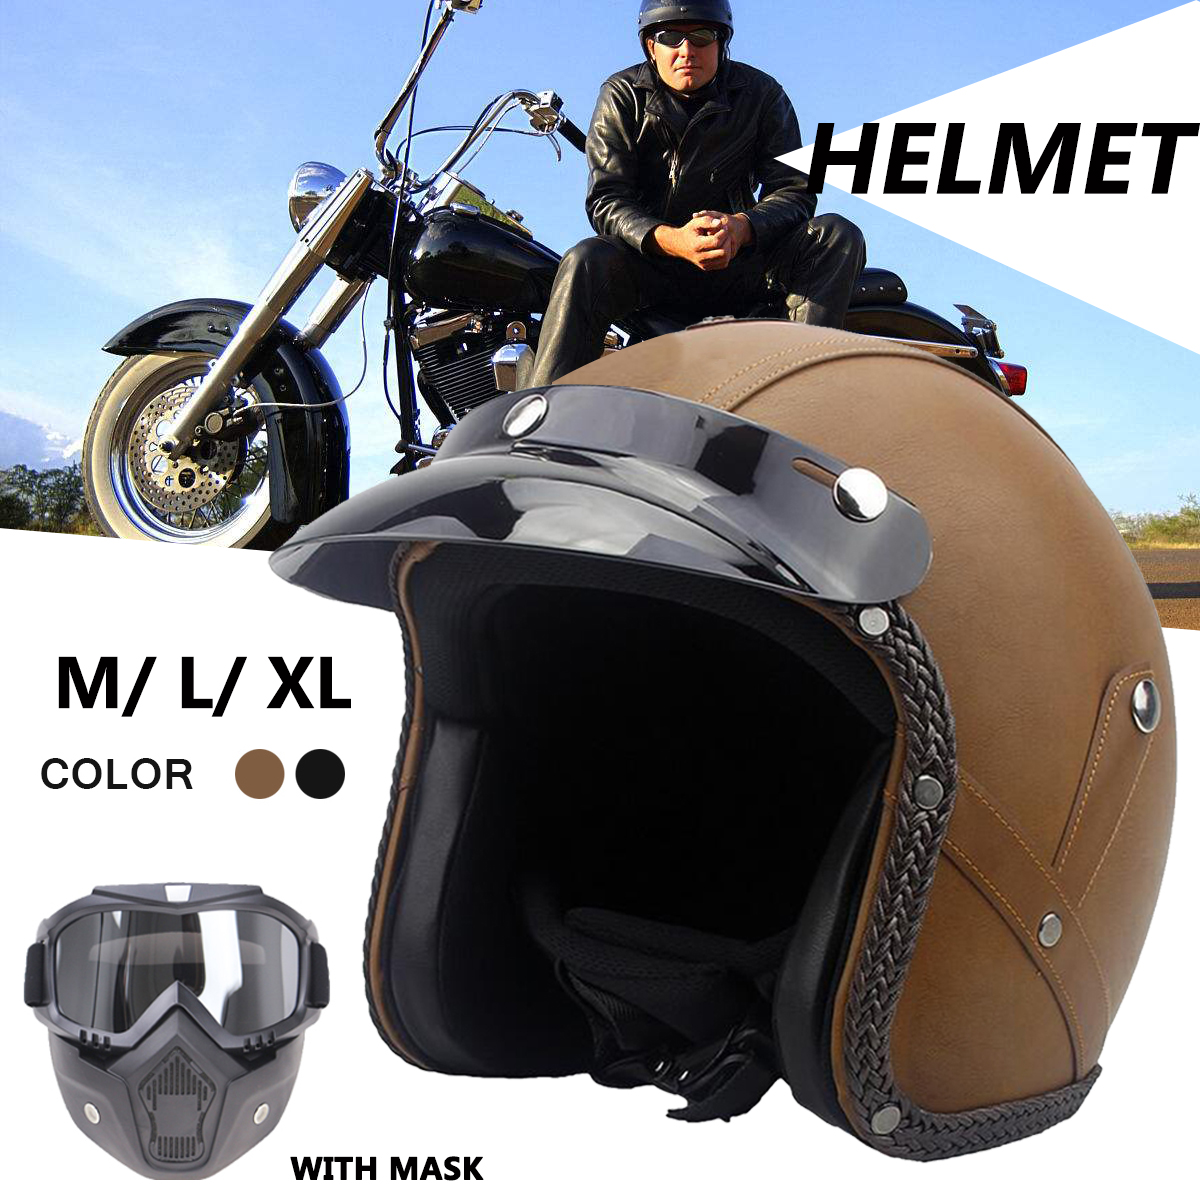 Retro Vintage Leather 3/4 Open Face Visor Helmet Motorcycle Scooter With Goggles Mask